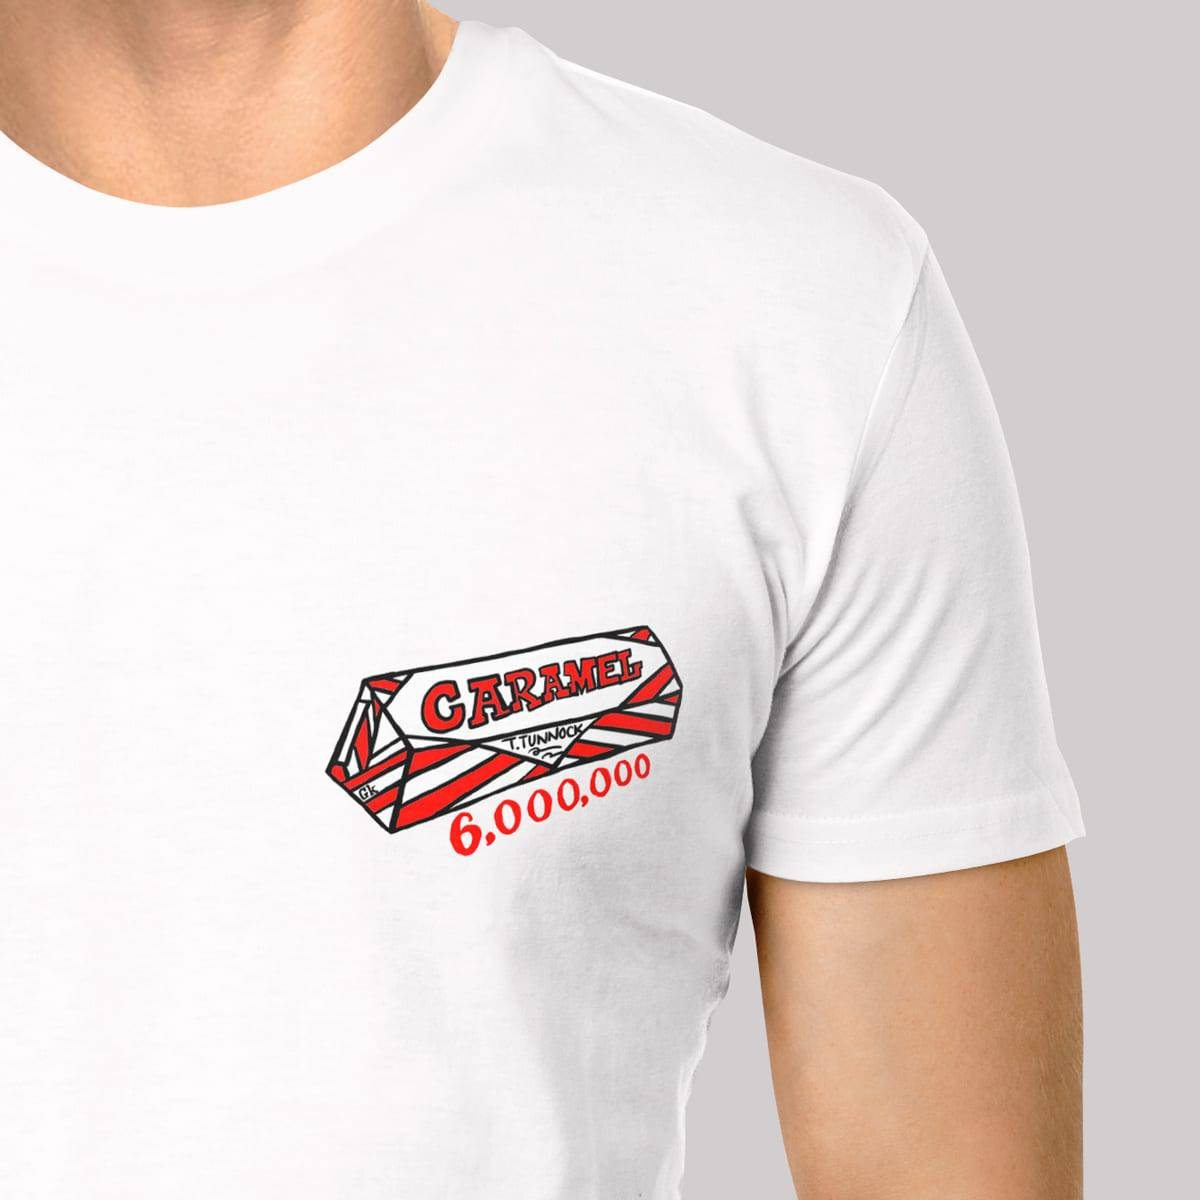 Tunnocks caramel wafer t shirt